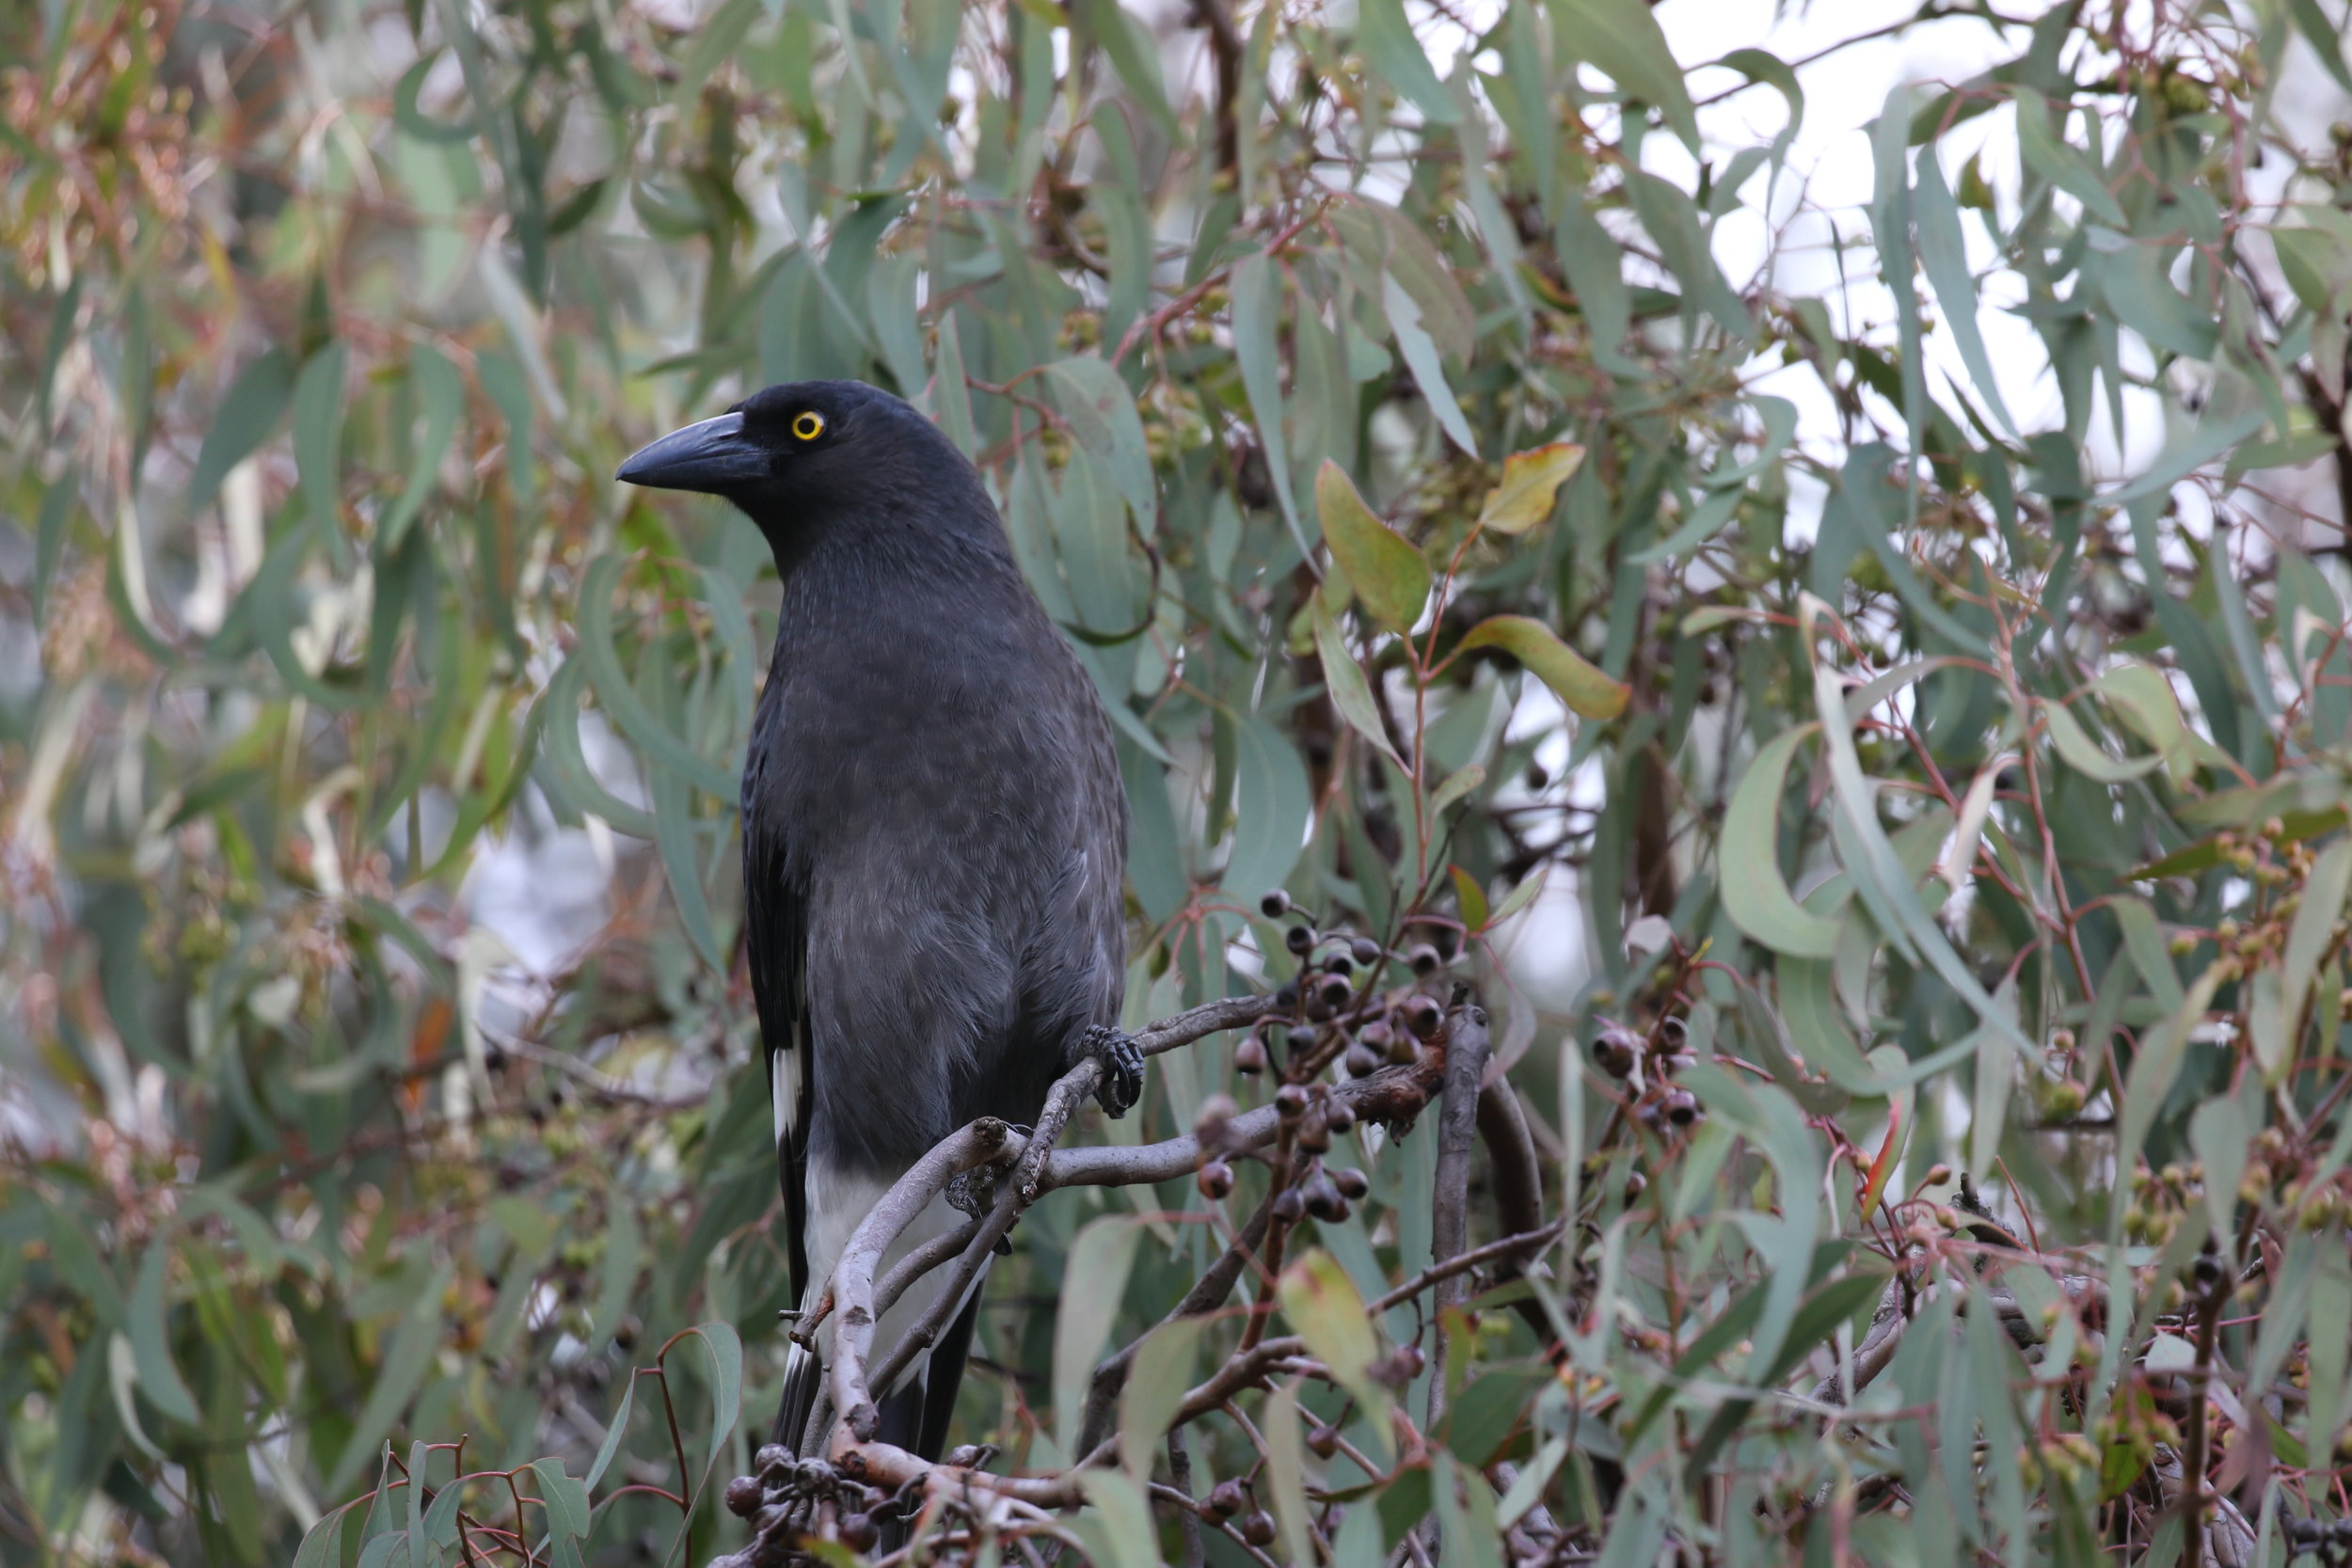 Pied currawongs are known for their piercing, vividly coloured eyes.    Image: Rowan Mott